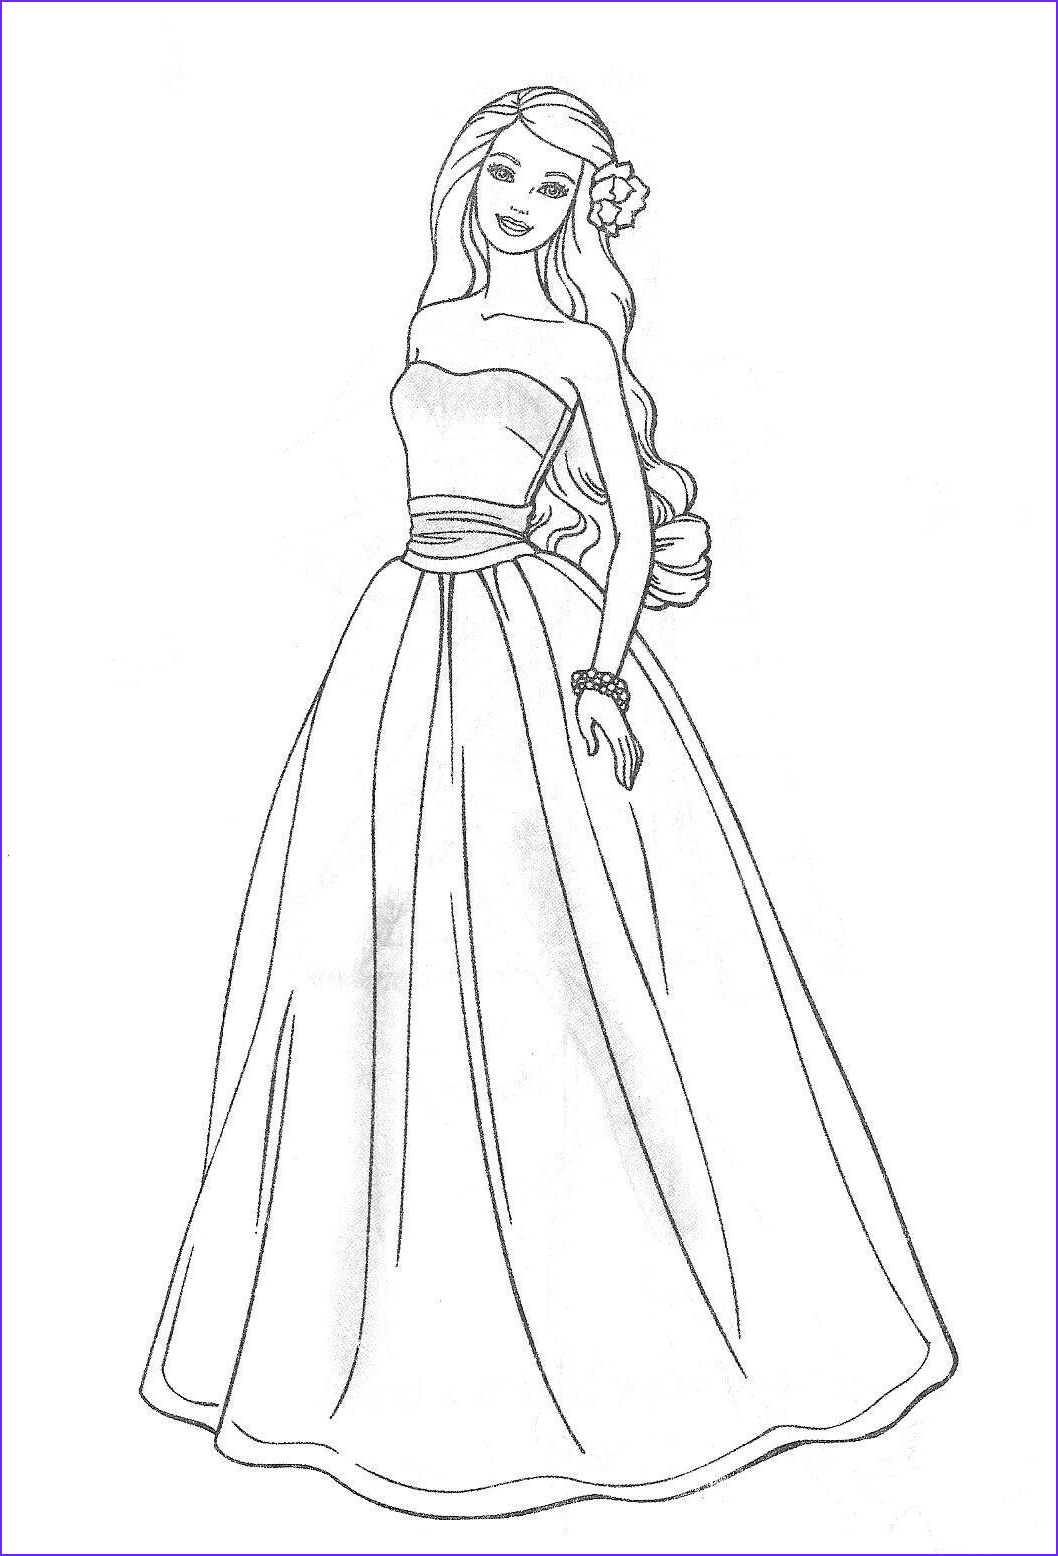 Coloring Pages Barbie Inspirational Stock Free Printable Barbie Coloring Pages For Kids